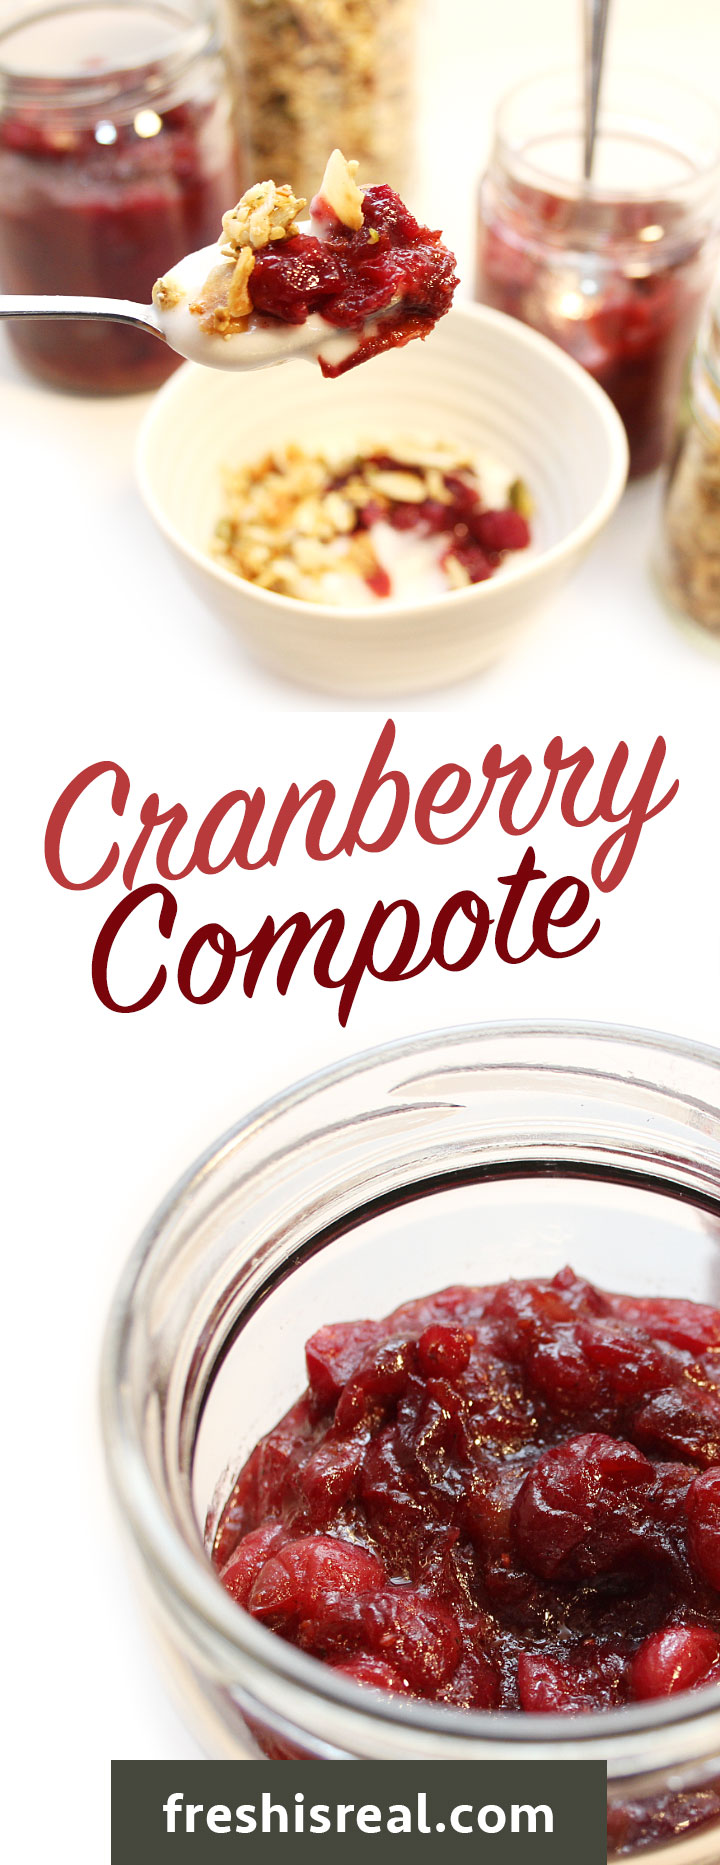 Dark red, fresh organic cranberries cooked in a sauce pot with maple syrup, Medjool dates, orange and lime zest and juice. #cranberry #freshisreal #cranberrysauce